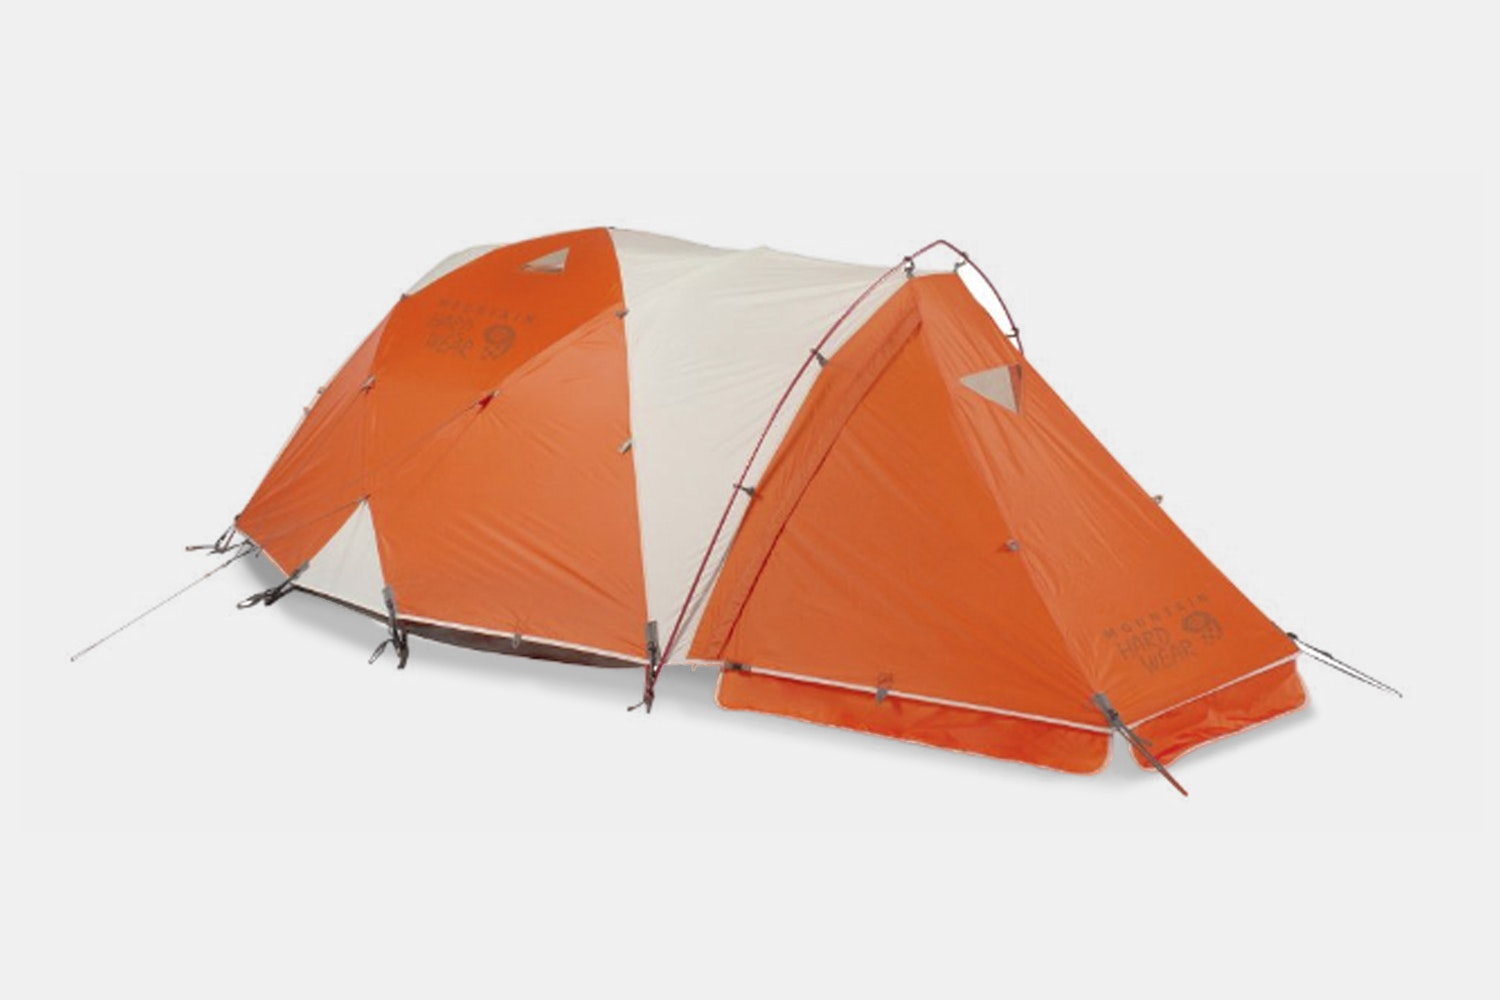 Mountain Hardwear Trango 4-Season Tents : mountain hardwear lightwedge 2 tent - memphite.com